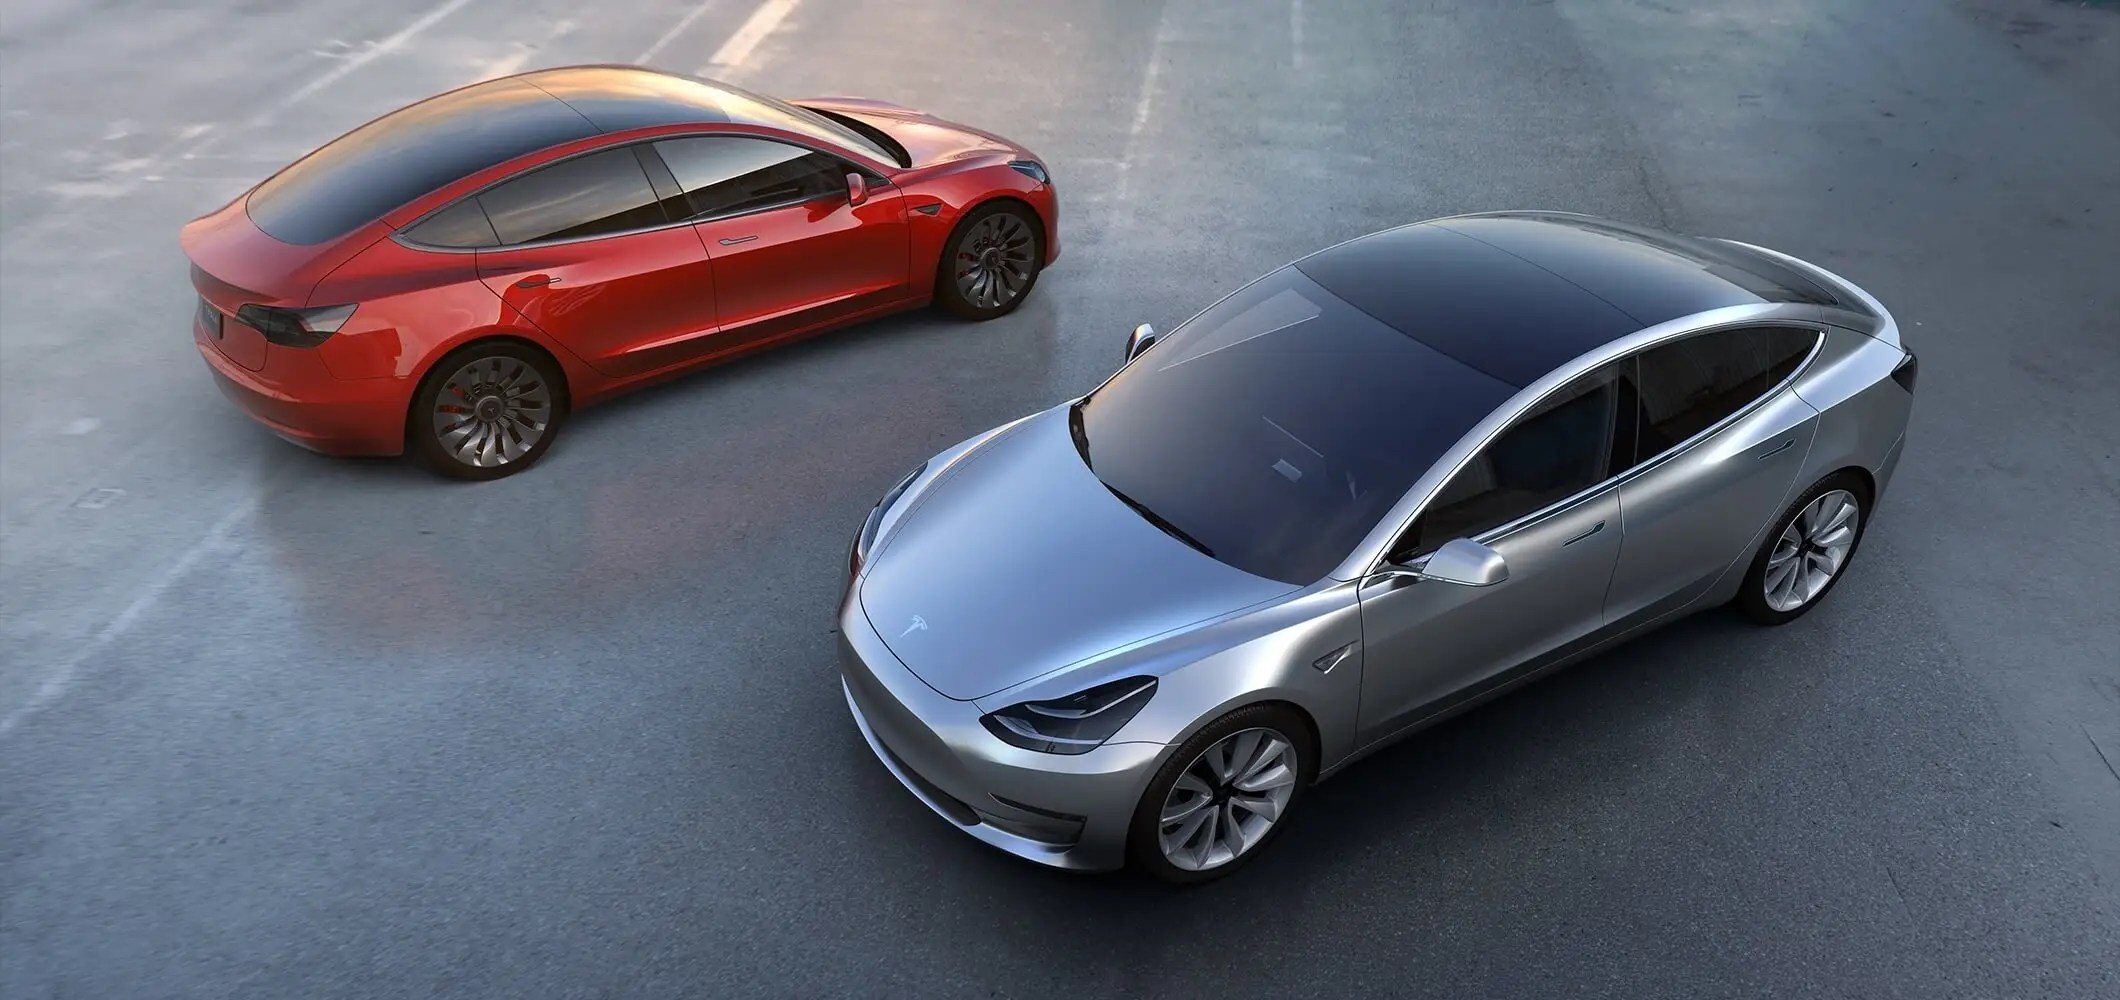 Tesla CEO Elon Musk says the more expensive versions of the Model 3 will accelerate faster and achieve longer range.